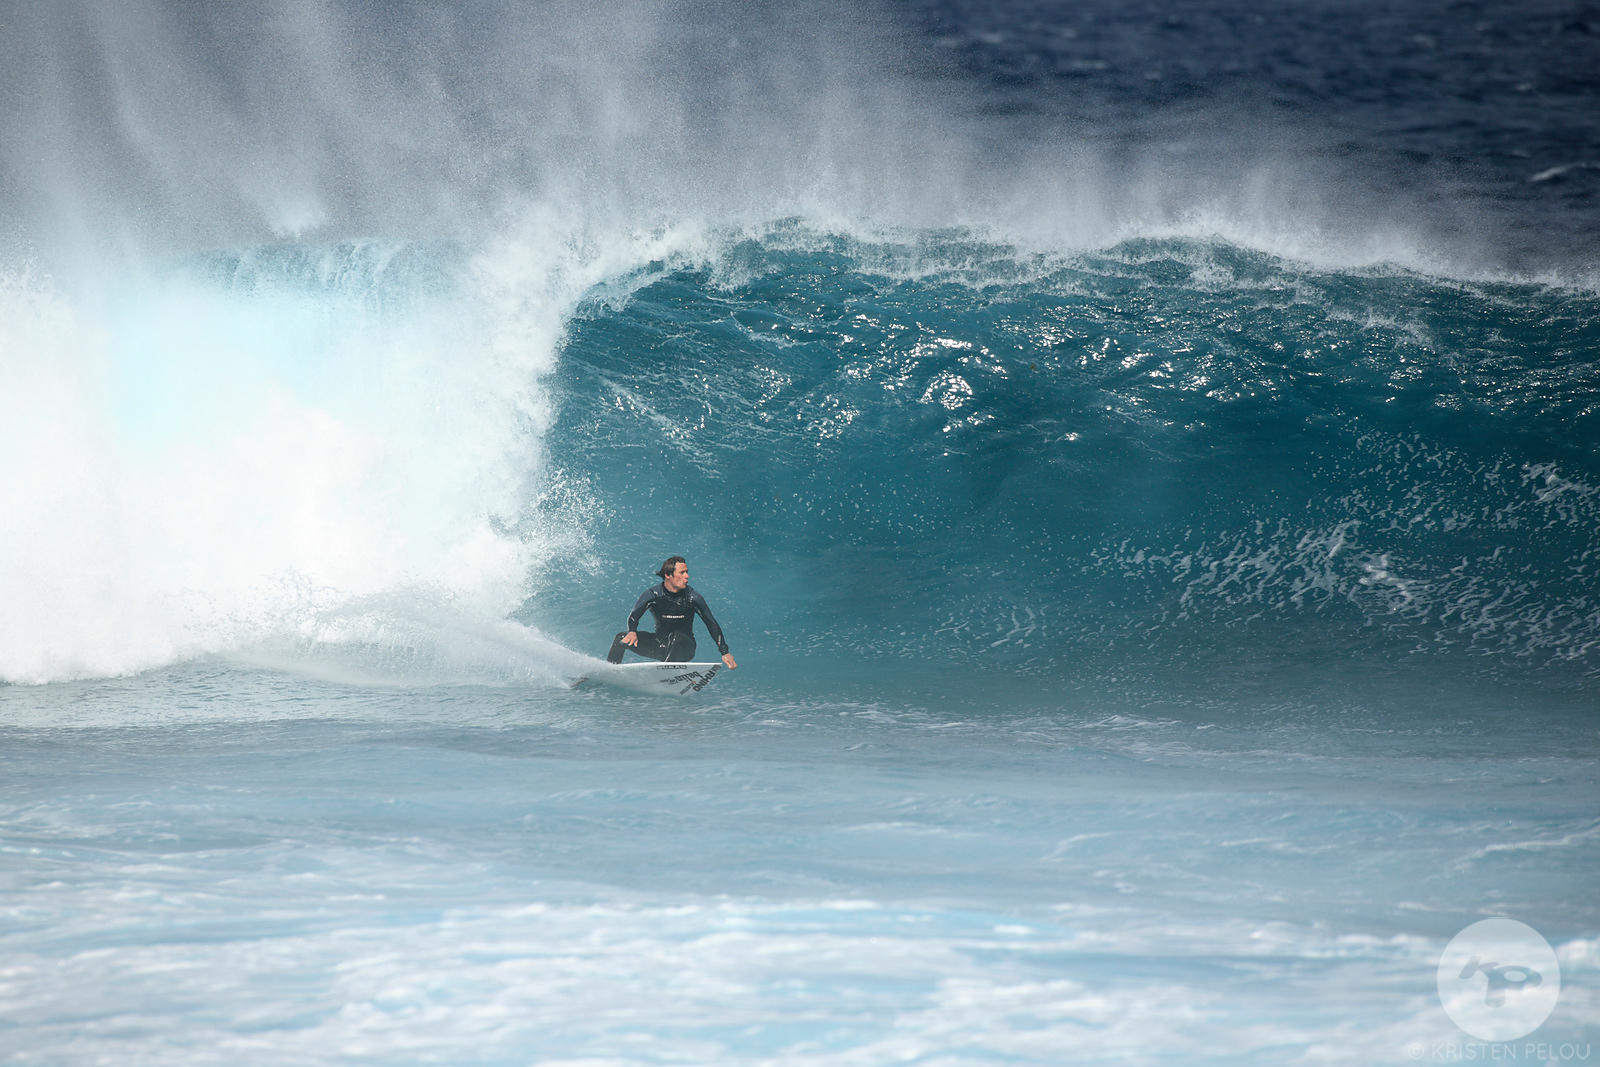 Dan Billon doing a backside bottom turn on a windy  wave, La Graciosa island, Canary islands, Spain, march 2008.